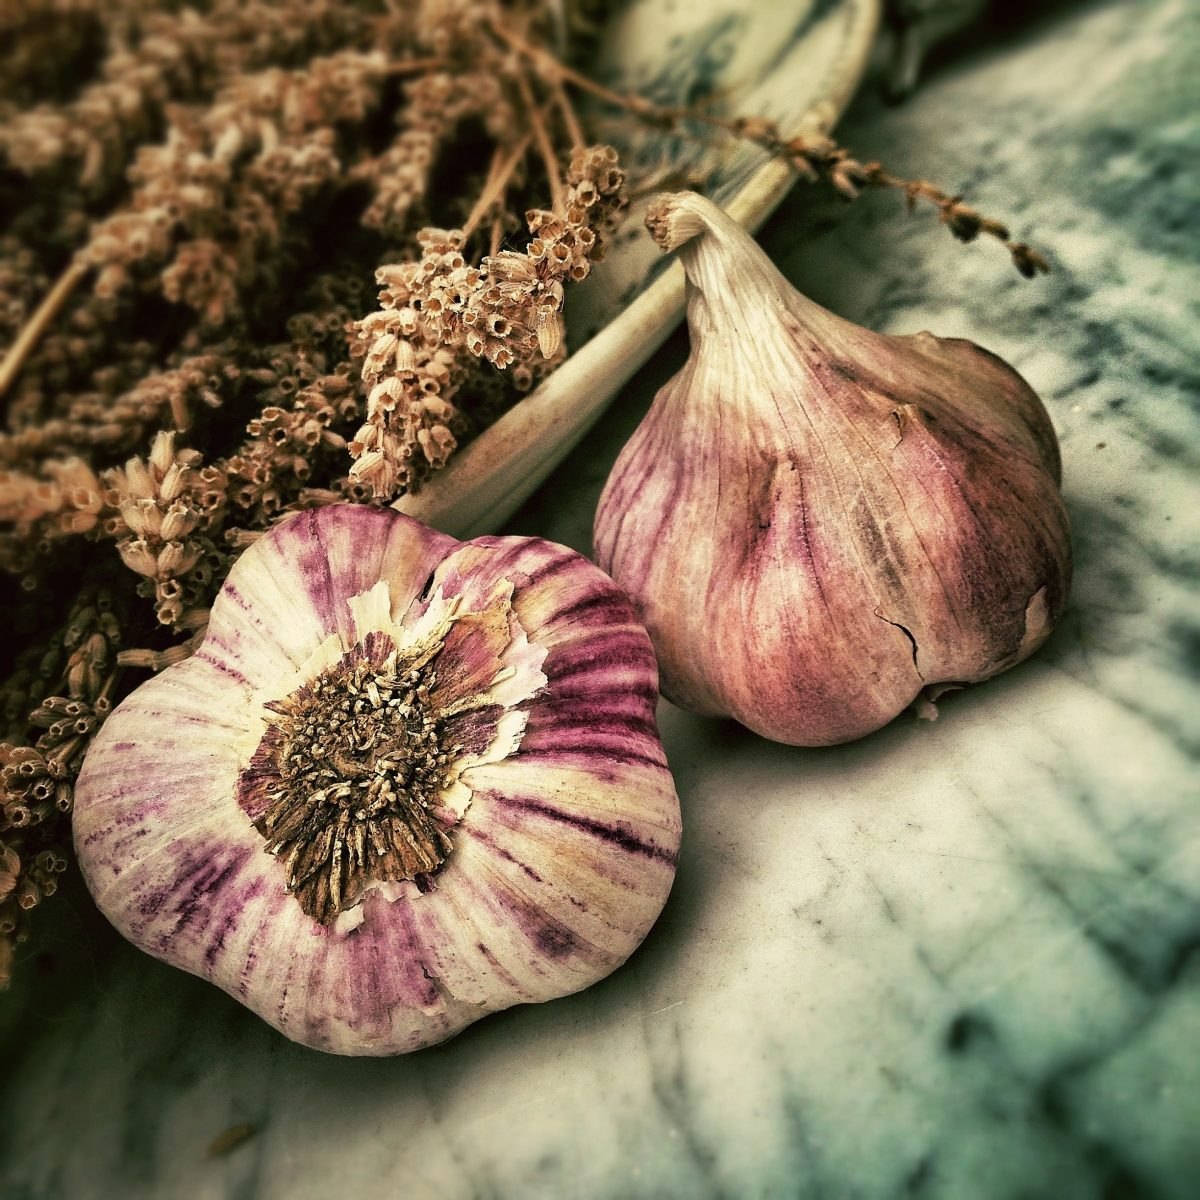 Garlic for boosting the immune system ail pour renforcer le système immunitaire